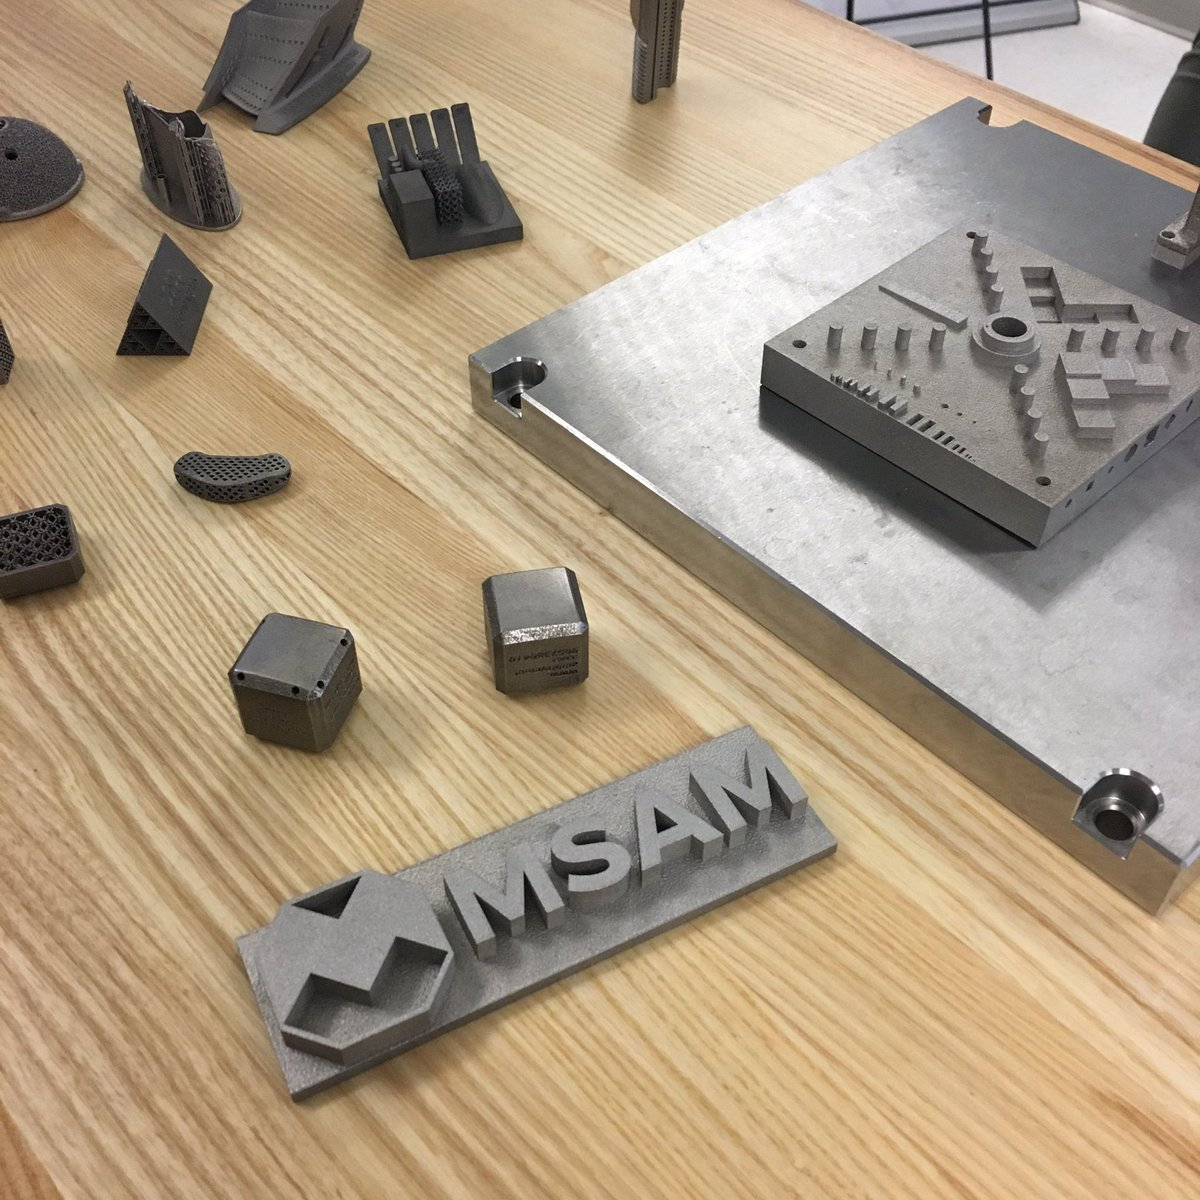 Metal 3D printed parts at the MSAM. Photo via Reza Moridi.